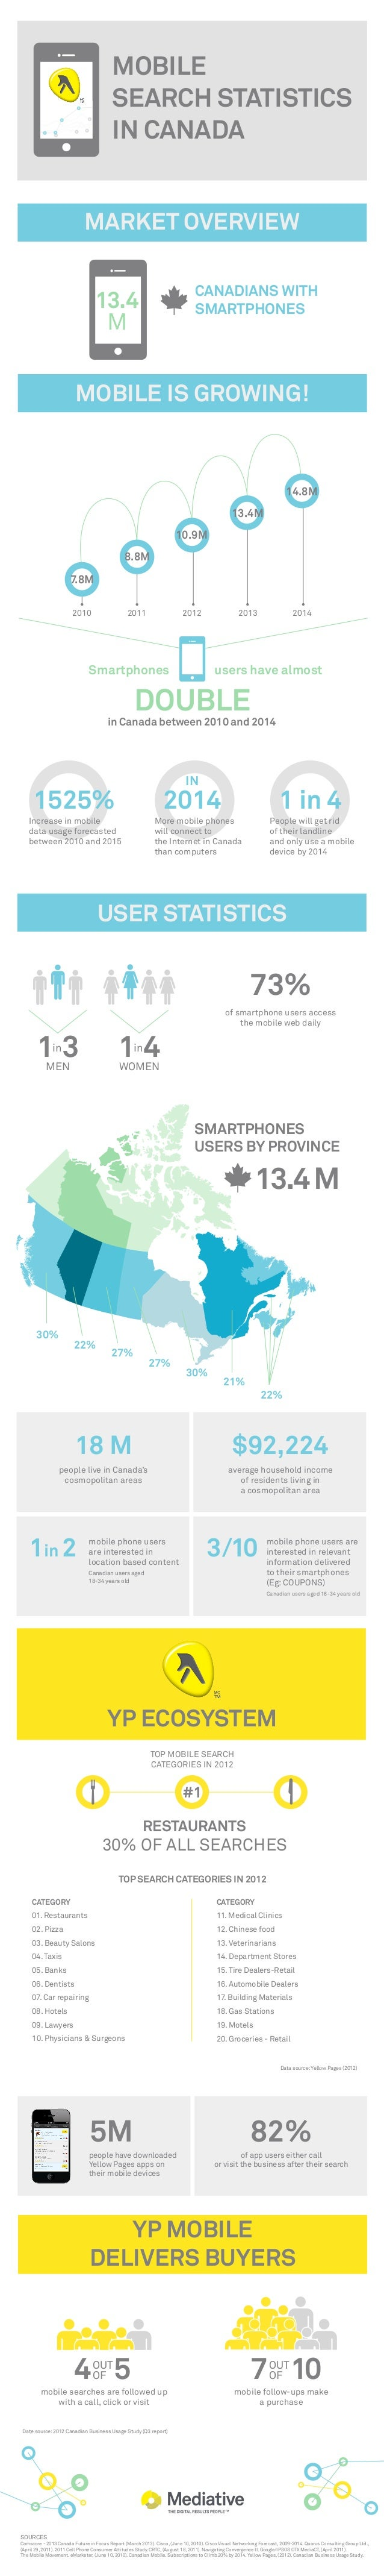 MOBILE SEARCH STATISTICS IN CANADA MARKET OVERVIEW CANADIANS WITH SMARTPHONES  13.4 M  MOBILE IS GROWING!  14.8M 13.4M 10....